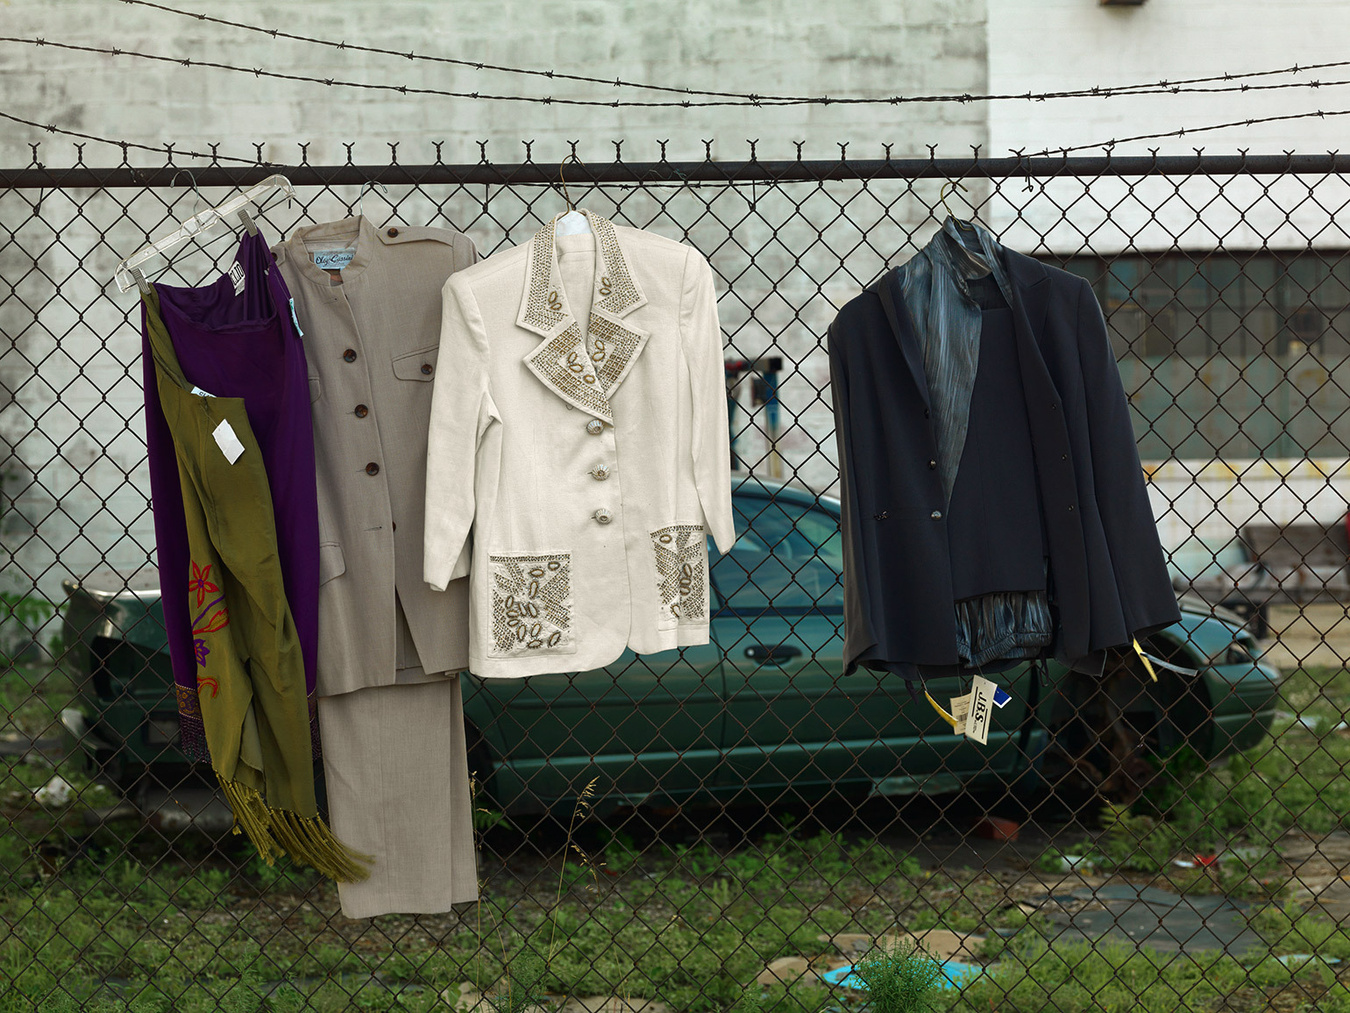 Items of Clothing Left on a Fence, East Warren Ave., Detroit 2014